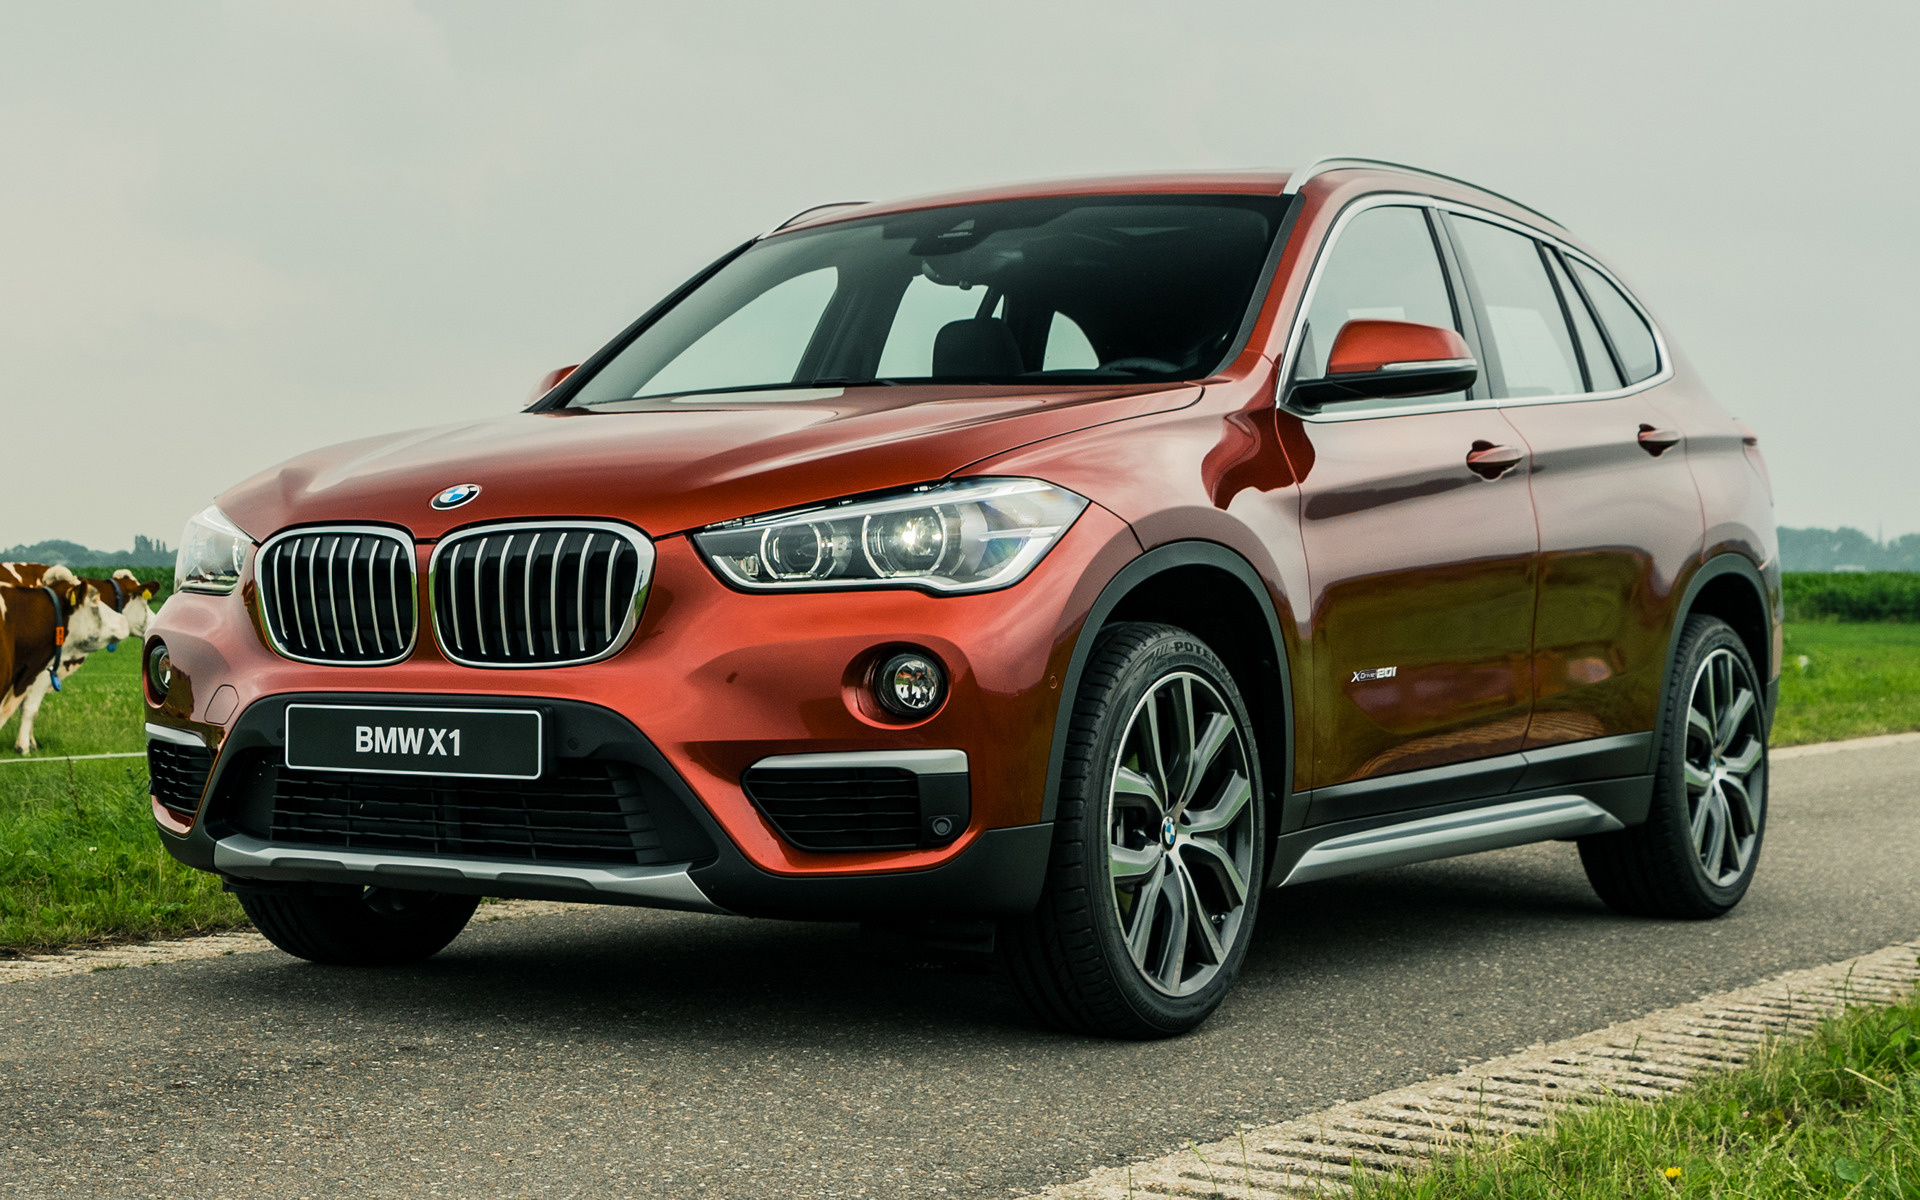 2017 bmw x1 orange edition